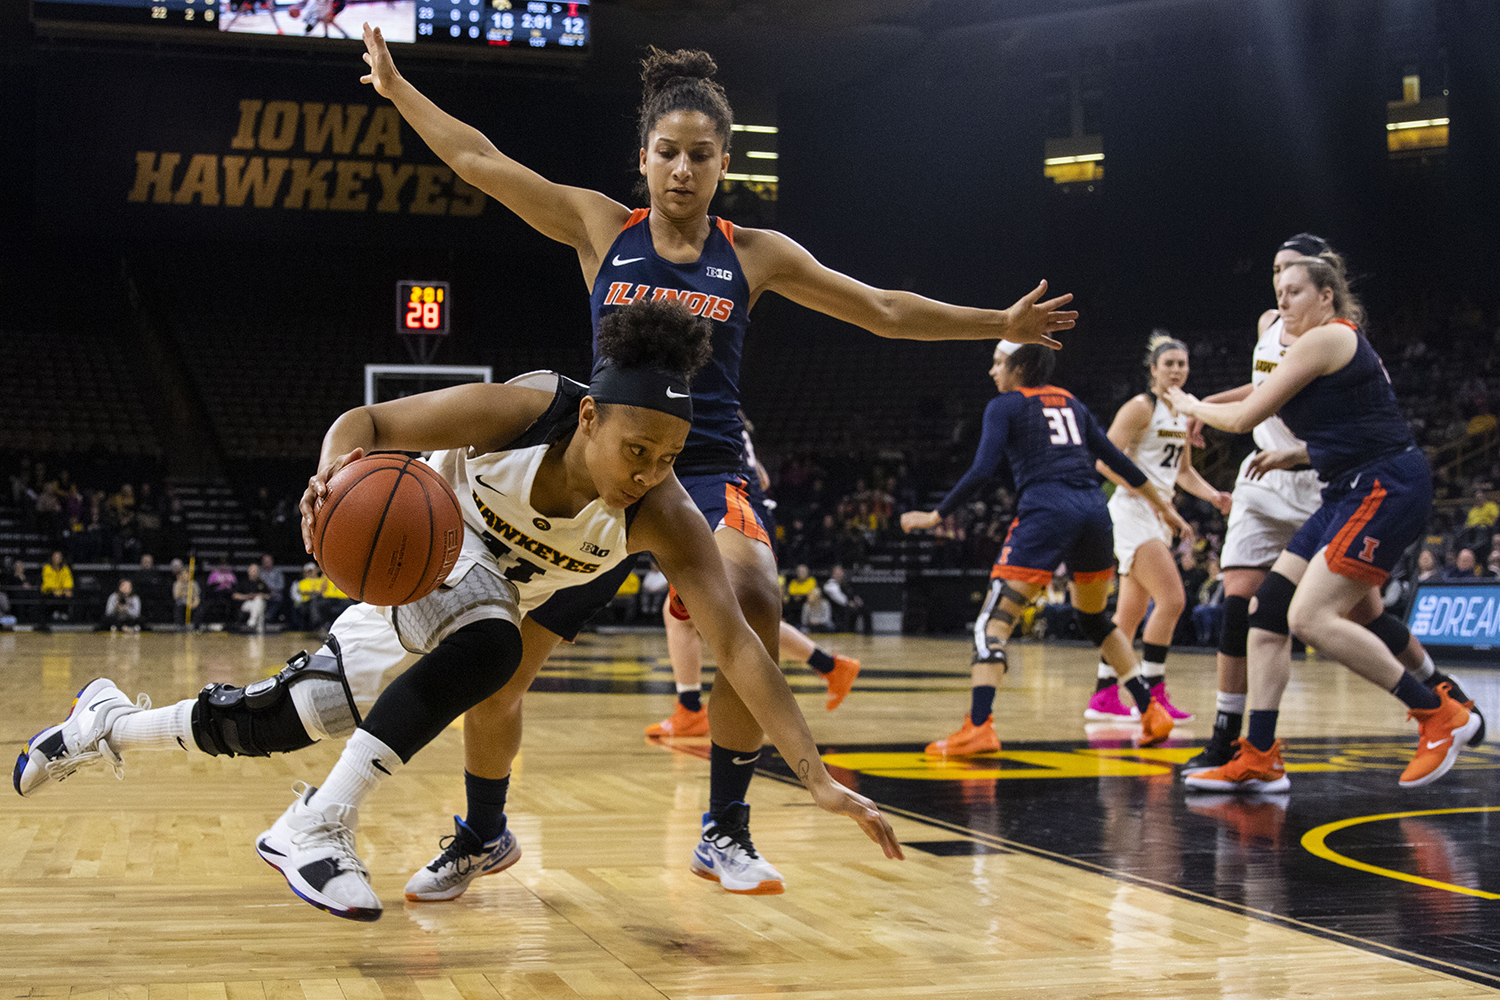 Iowa+guard+Tania+Davis+falls+while+dribbling+to+the+basket+during+the+Iowa%2FIllinois+women%27s+basketball+game+at+Carver-Hawkeye+Arena+on+Thursday%2C+February+14%2C+2019.+The+Hawkeyes+defeated+the+Fighting+Illini%2C+88-66.+